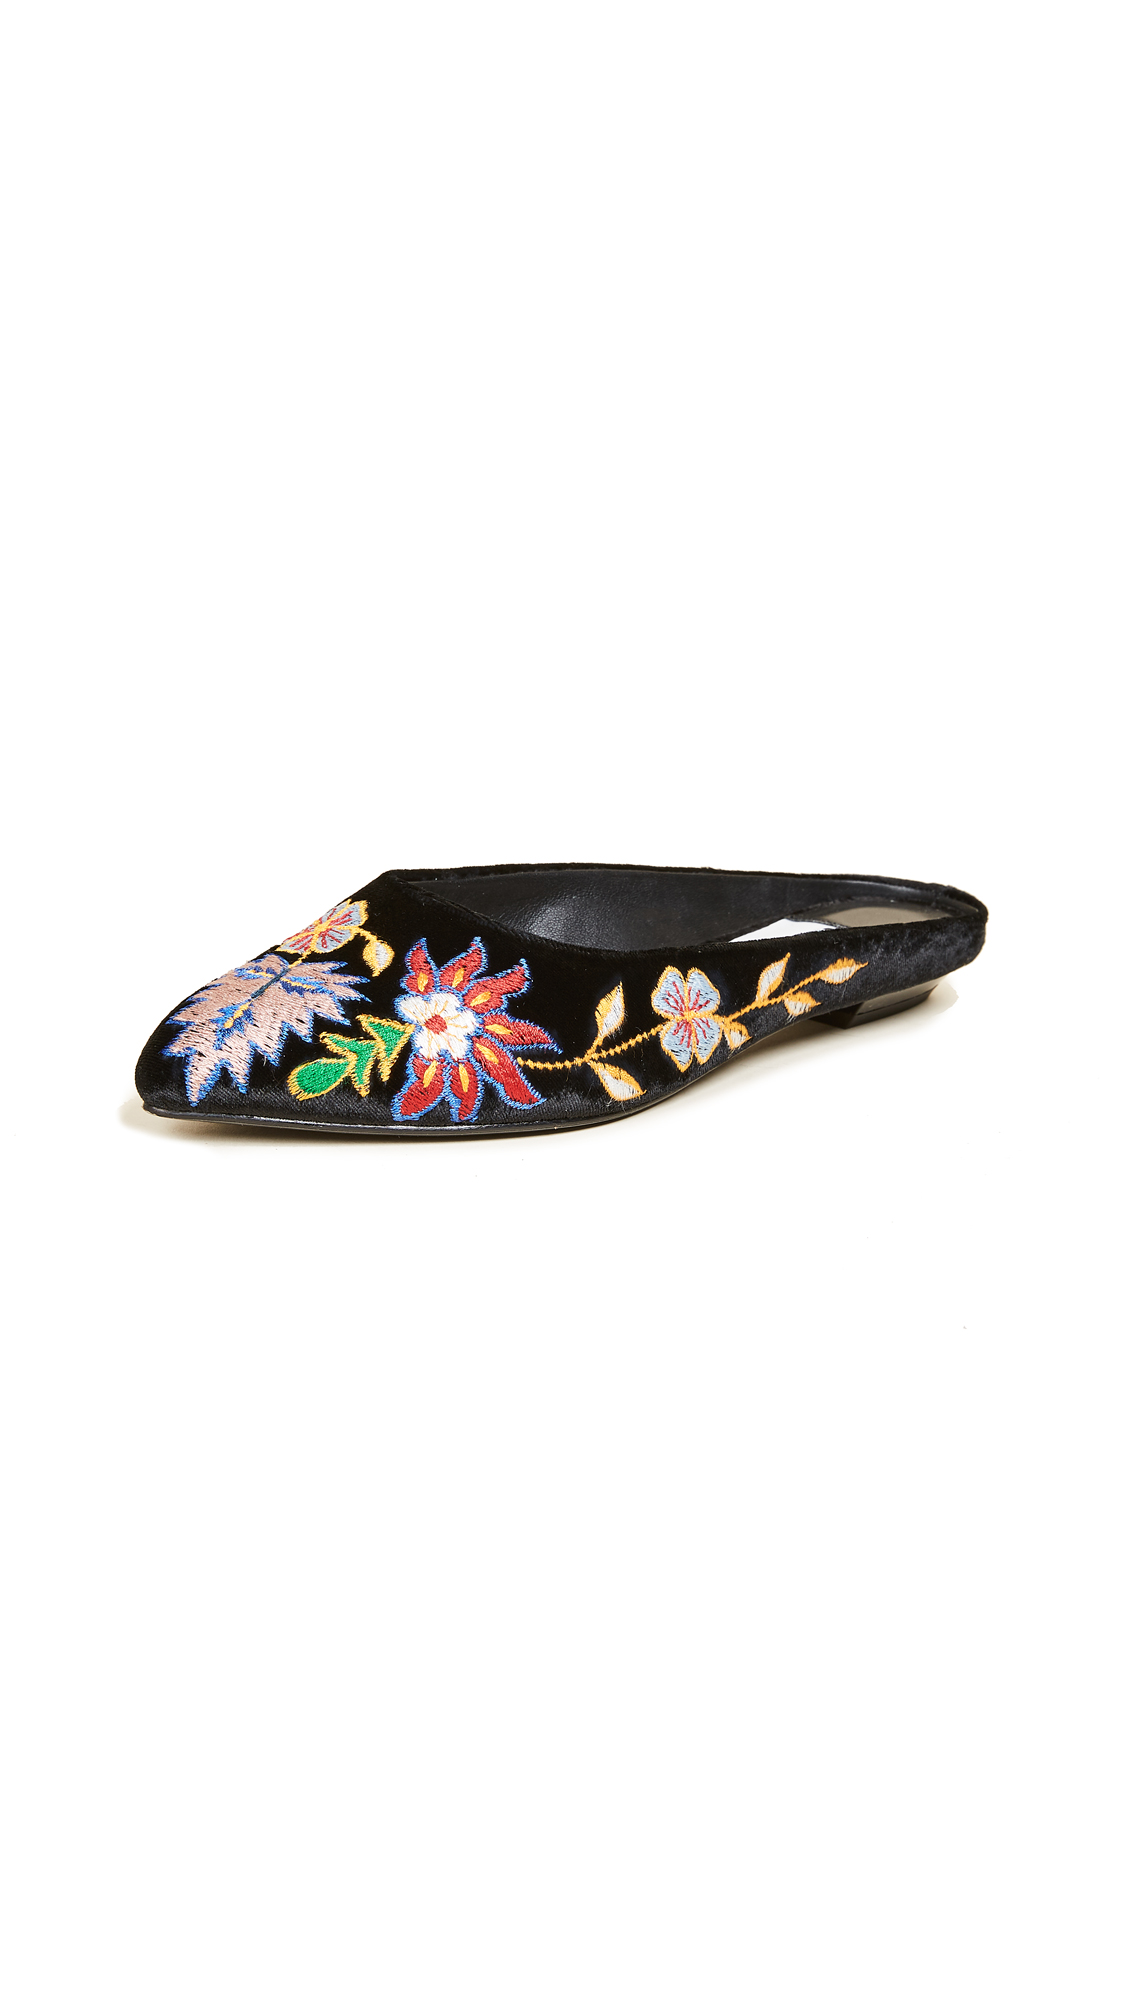 alice + olivia Abbey Embroidered Mules - Multi/Black